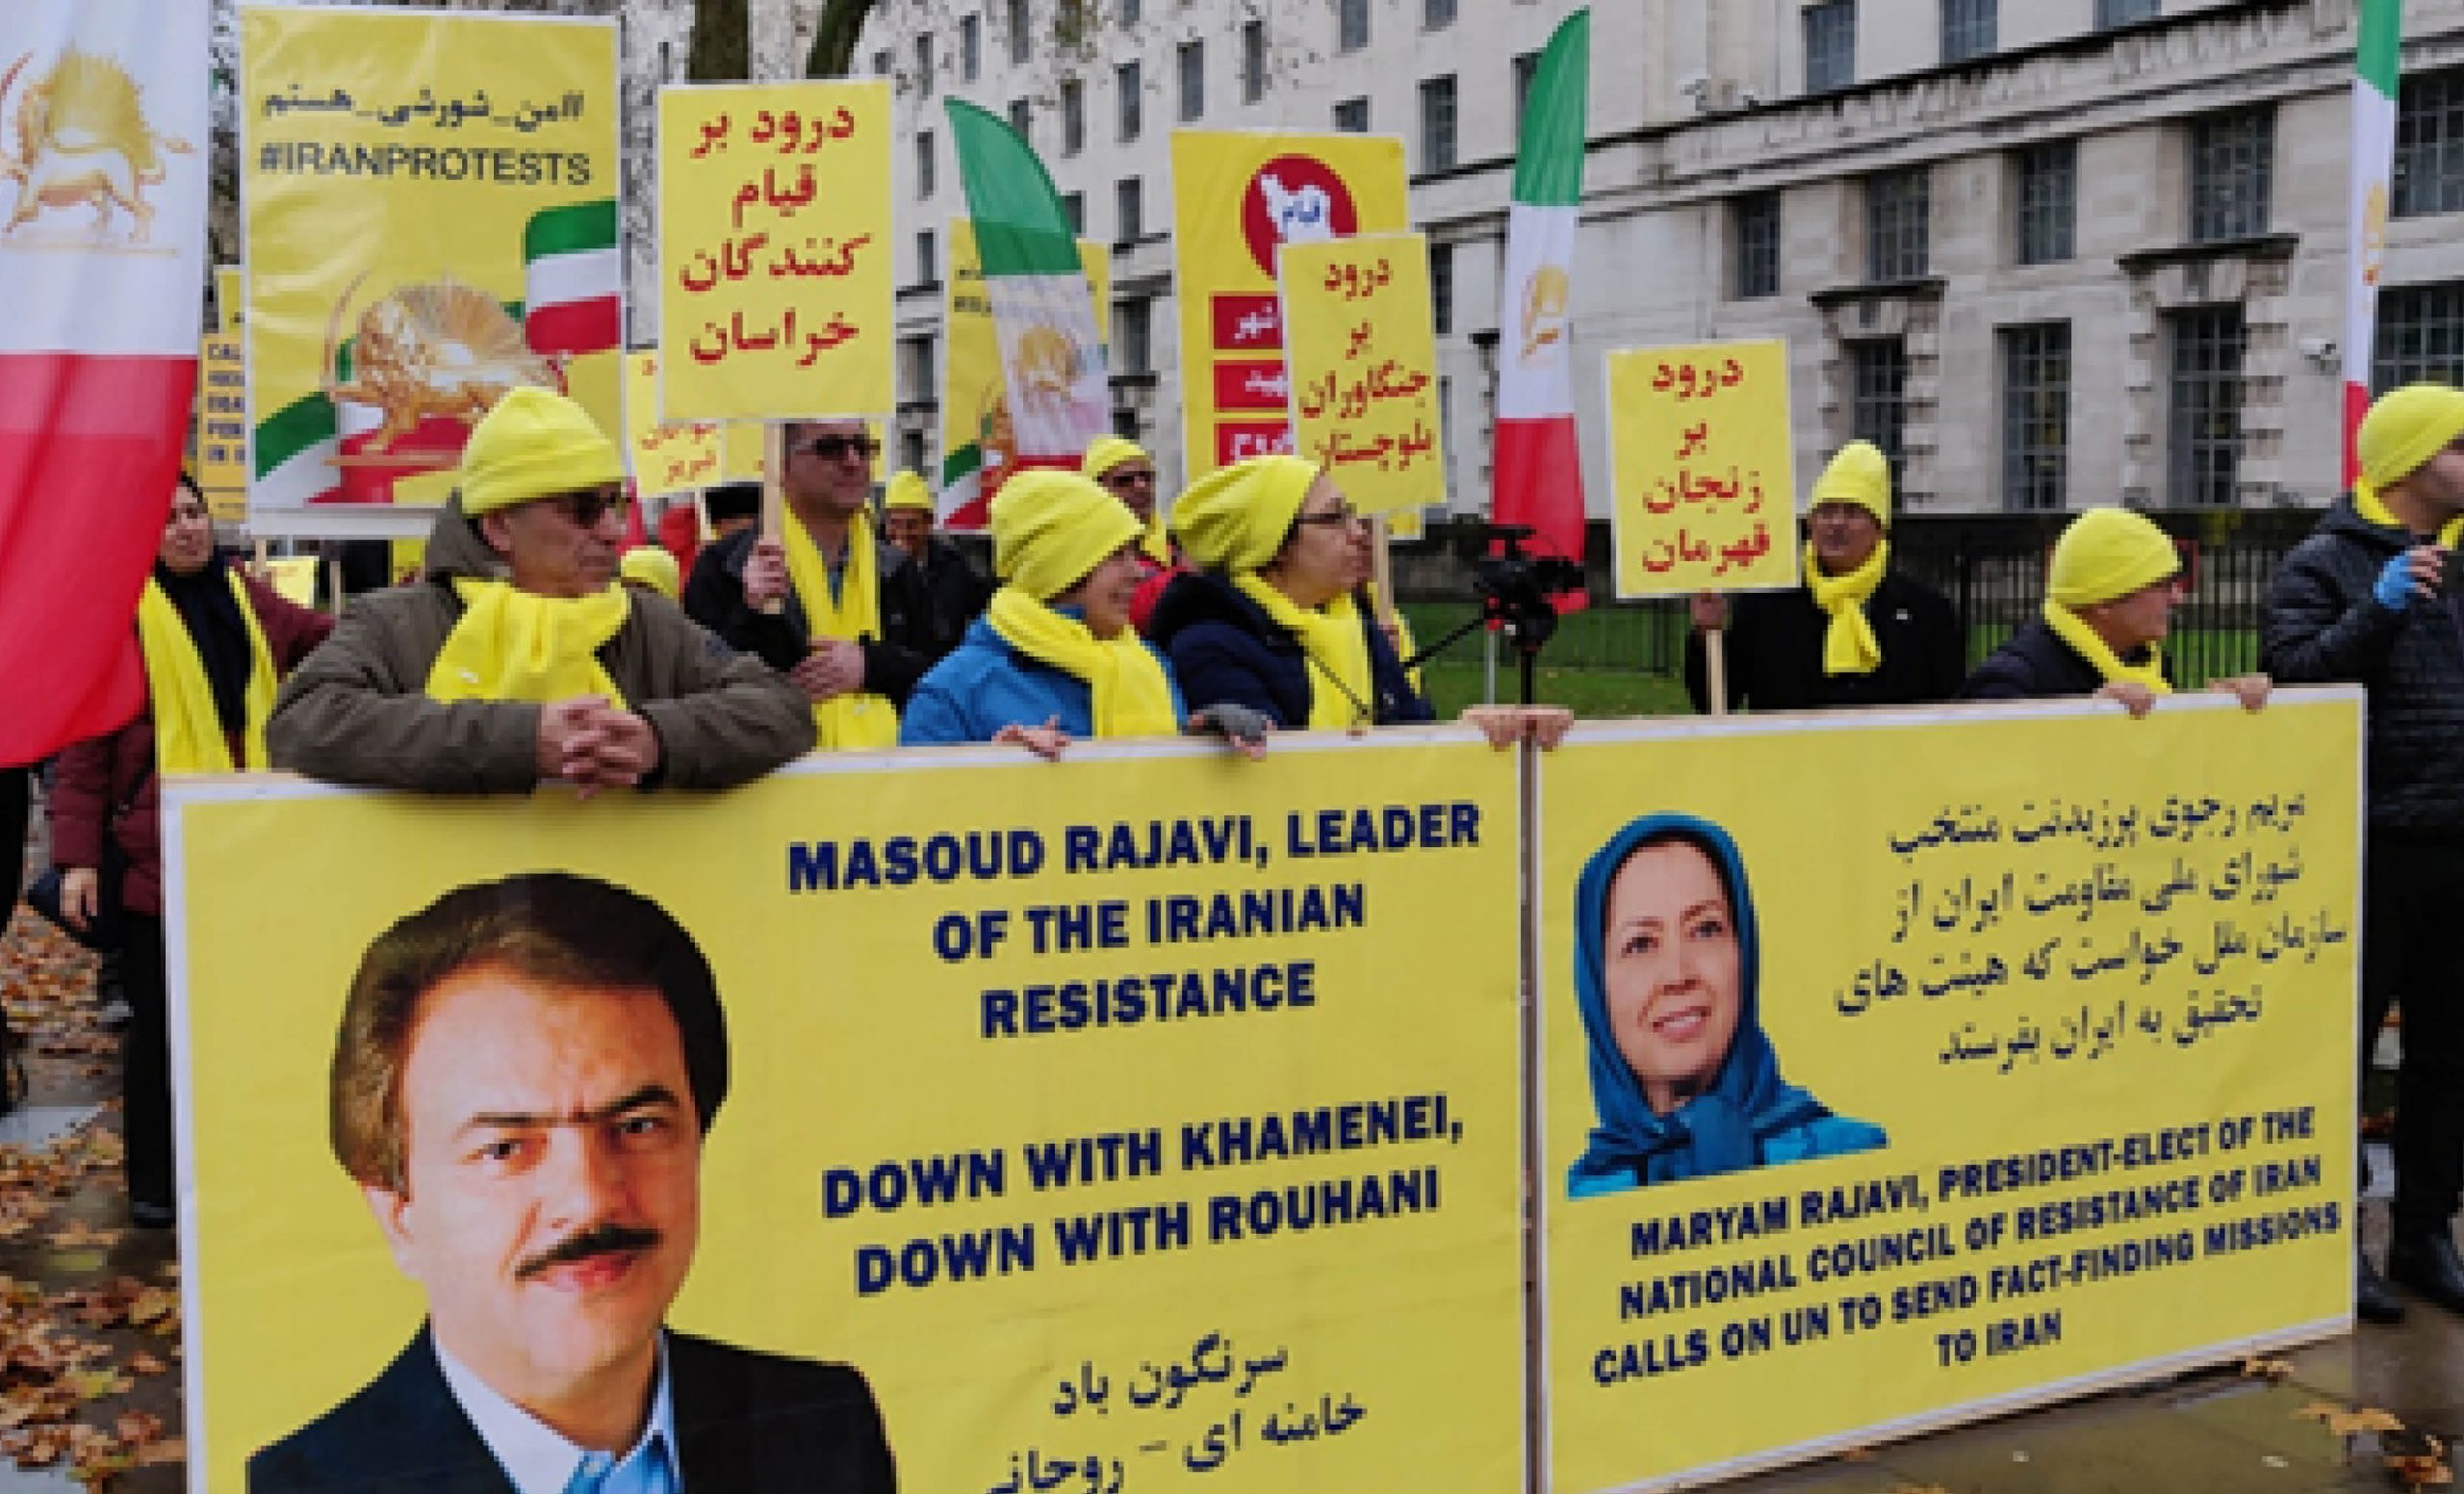 Iran Protests Iranians Rally in London